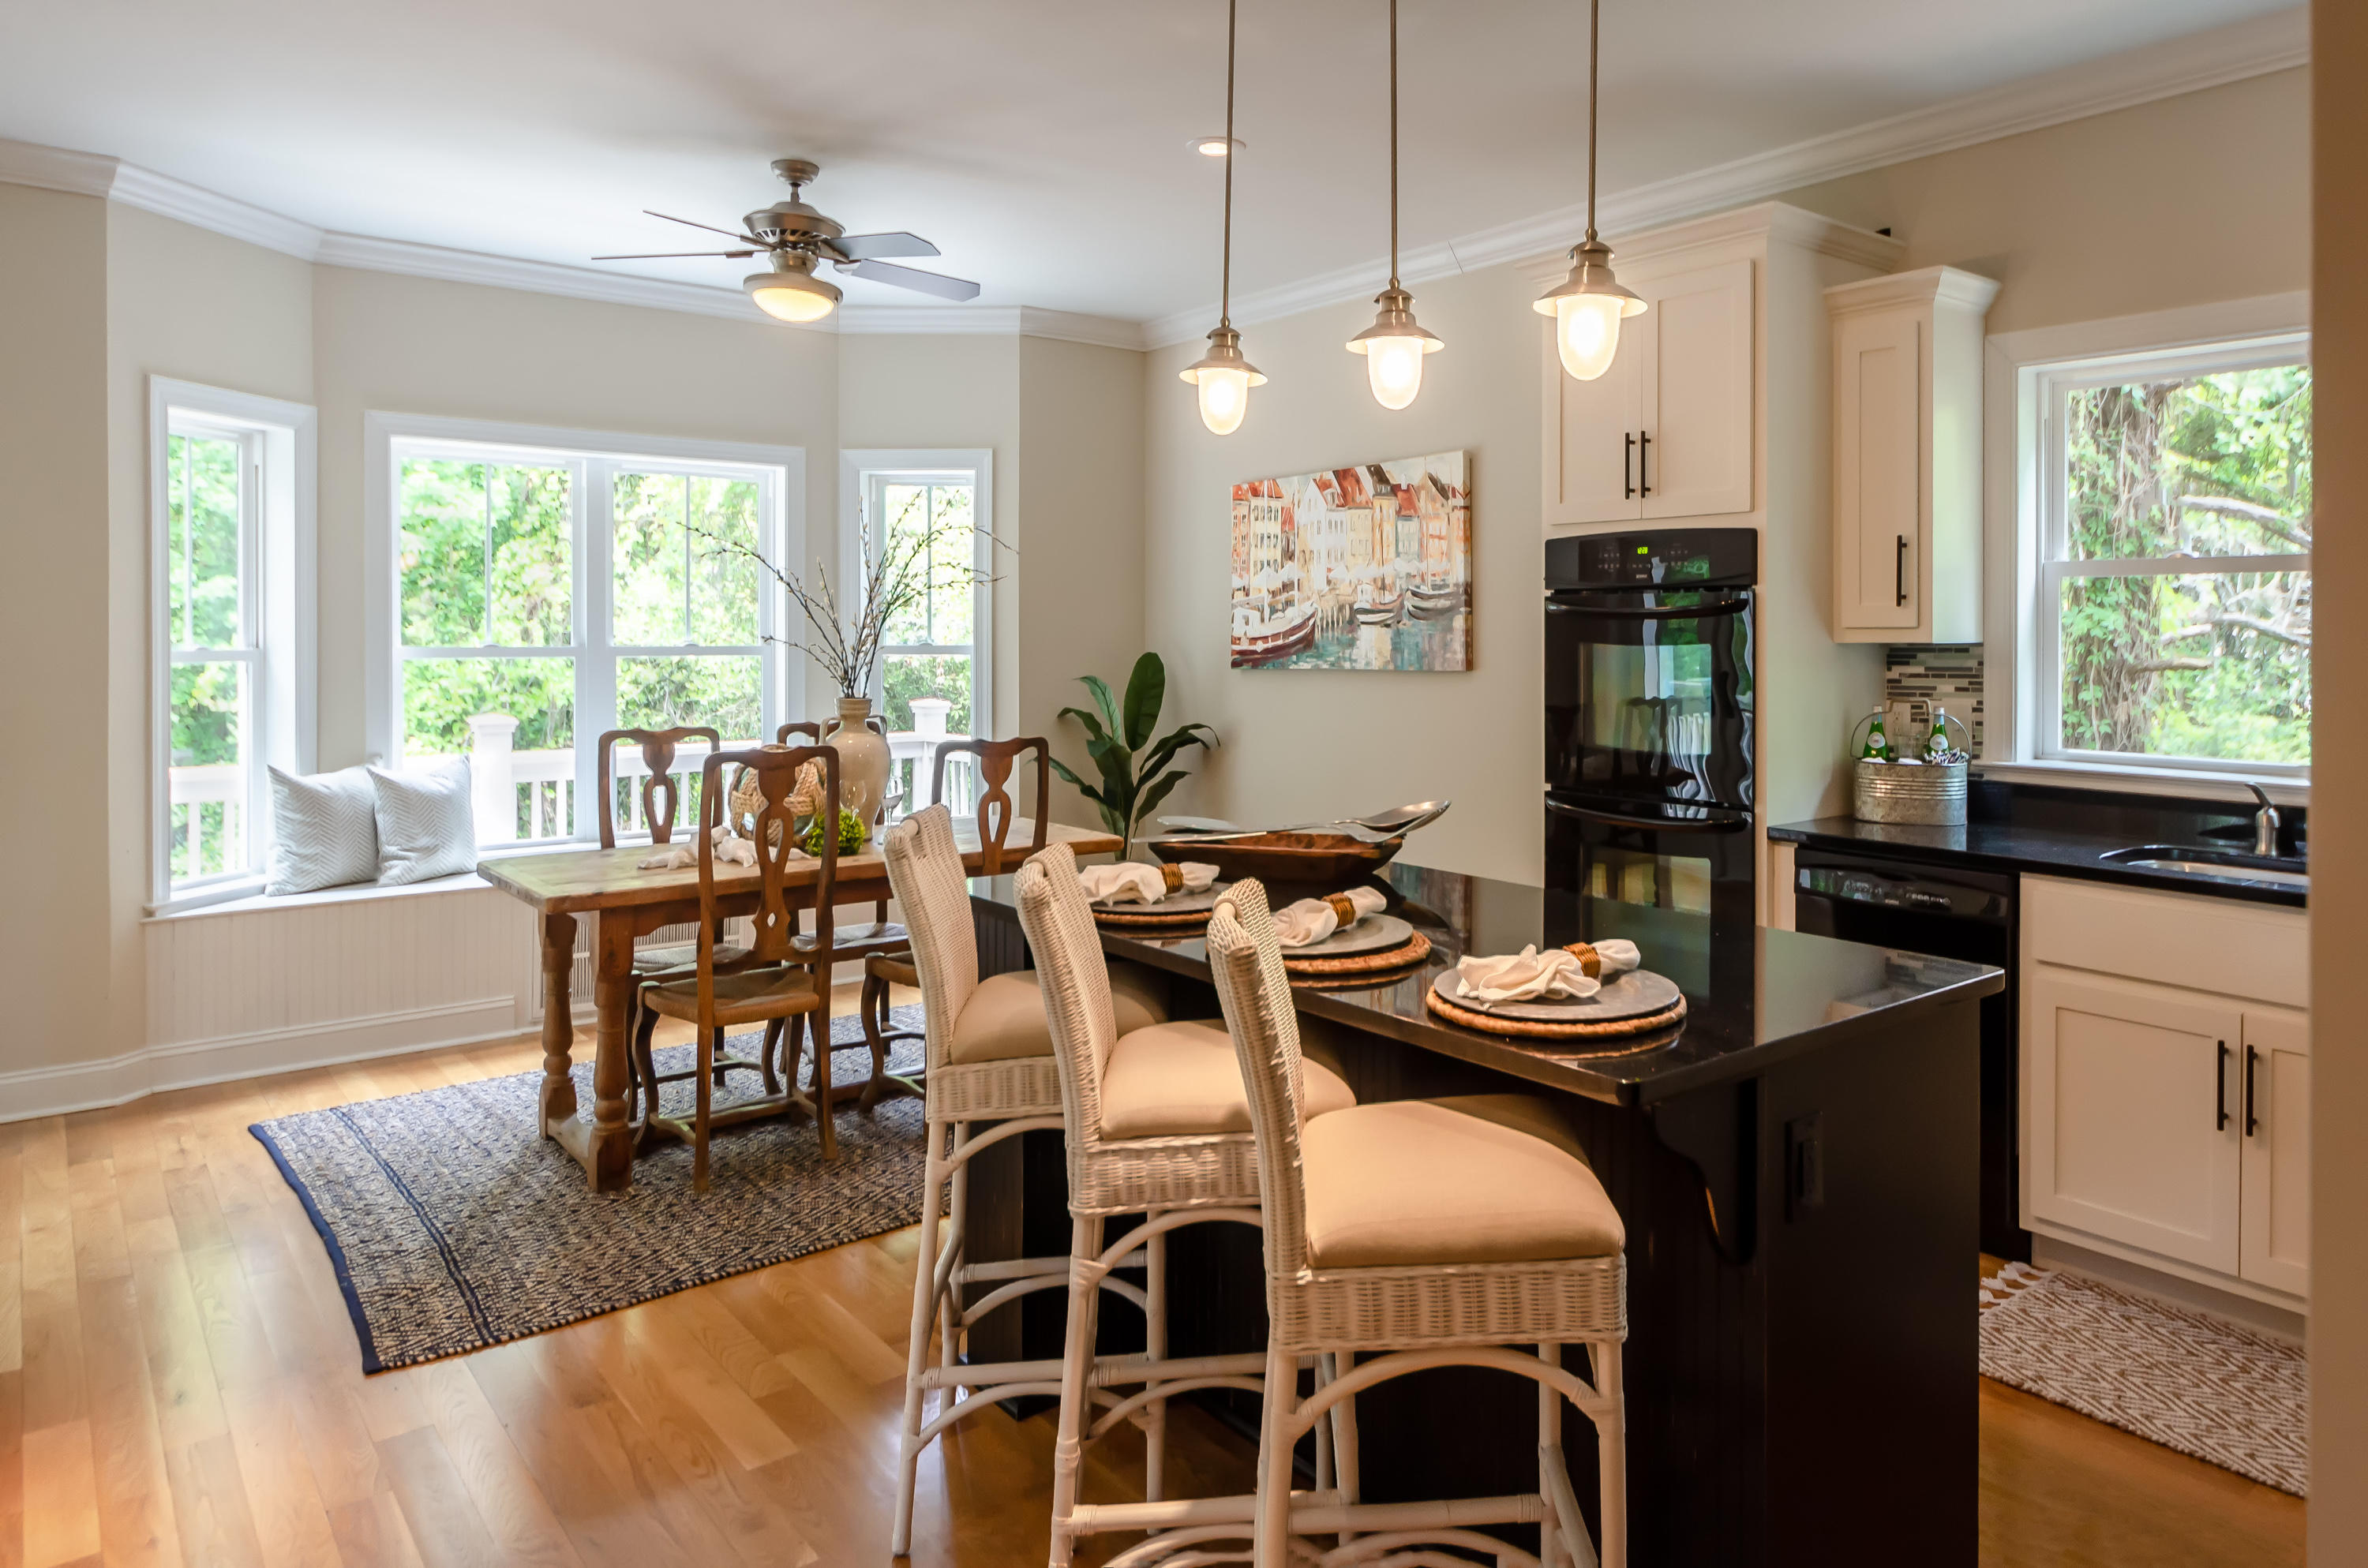 The Village at Seabrook Homes For Sale - 3076 Seabrook Village, Seabrook Island, SC - 24